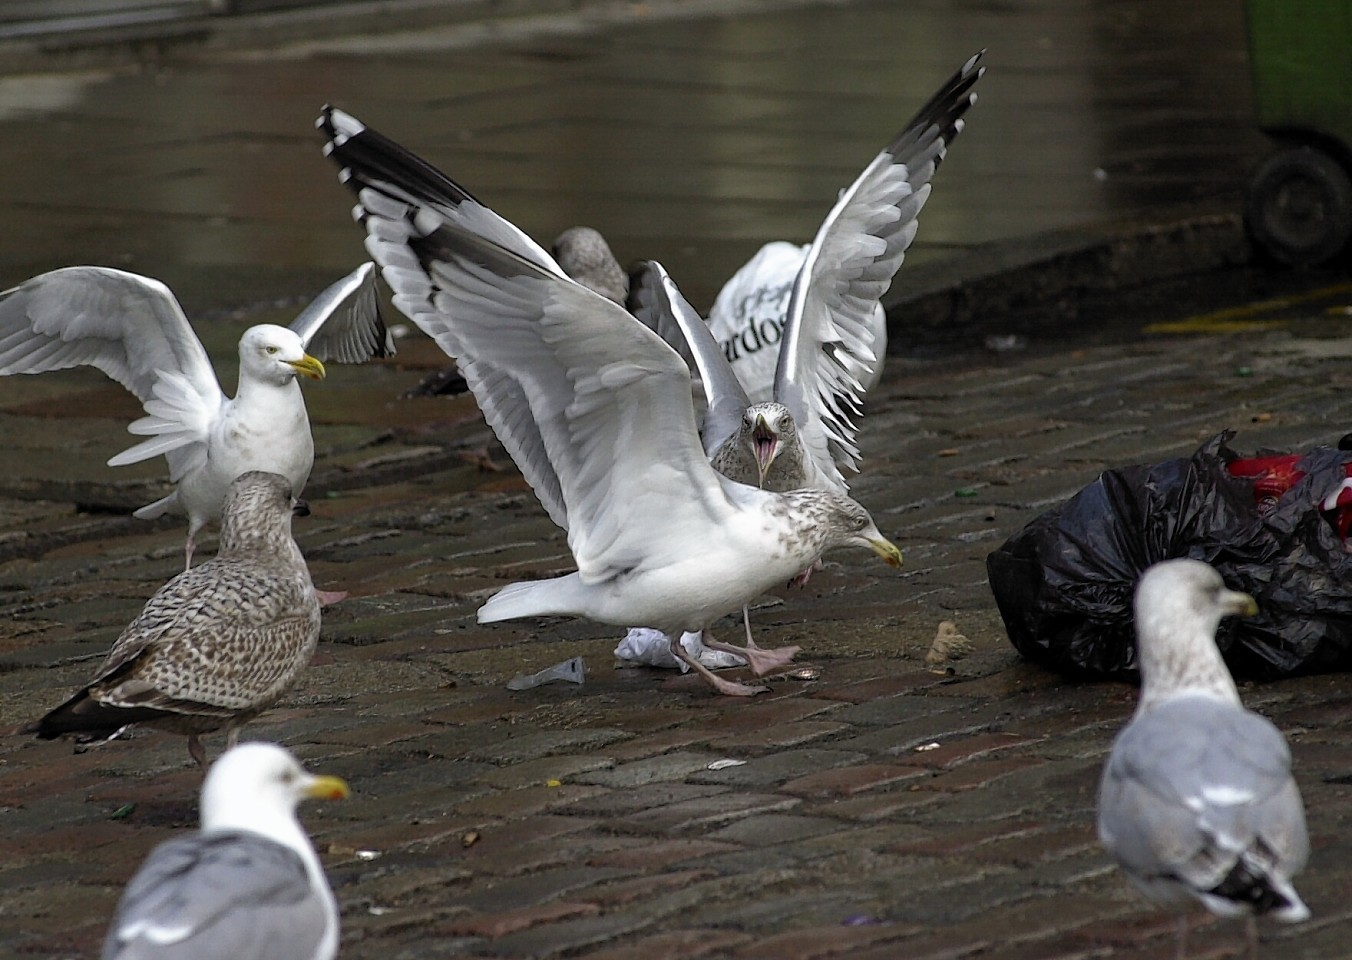 Councillors will discuss the funding for the gull control scheme next week.